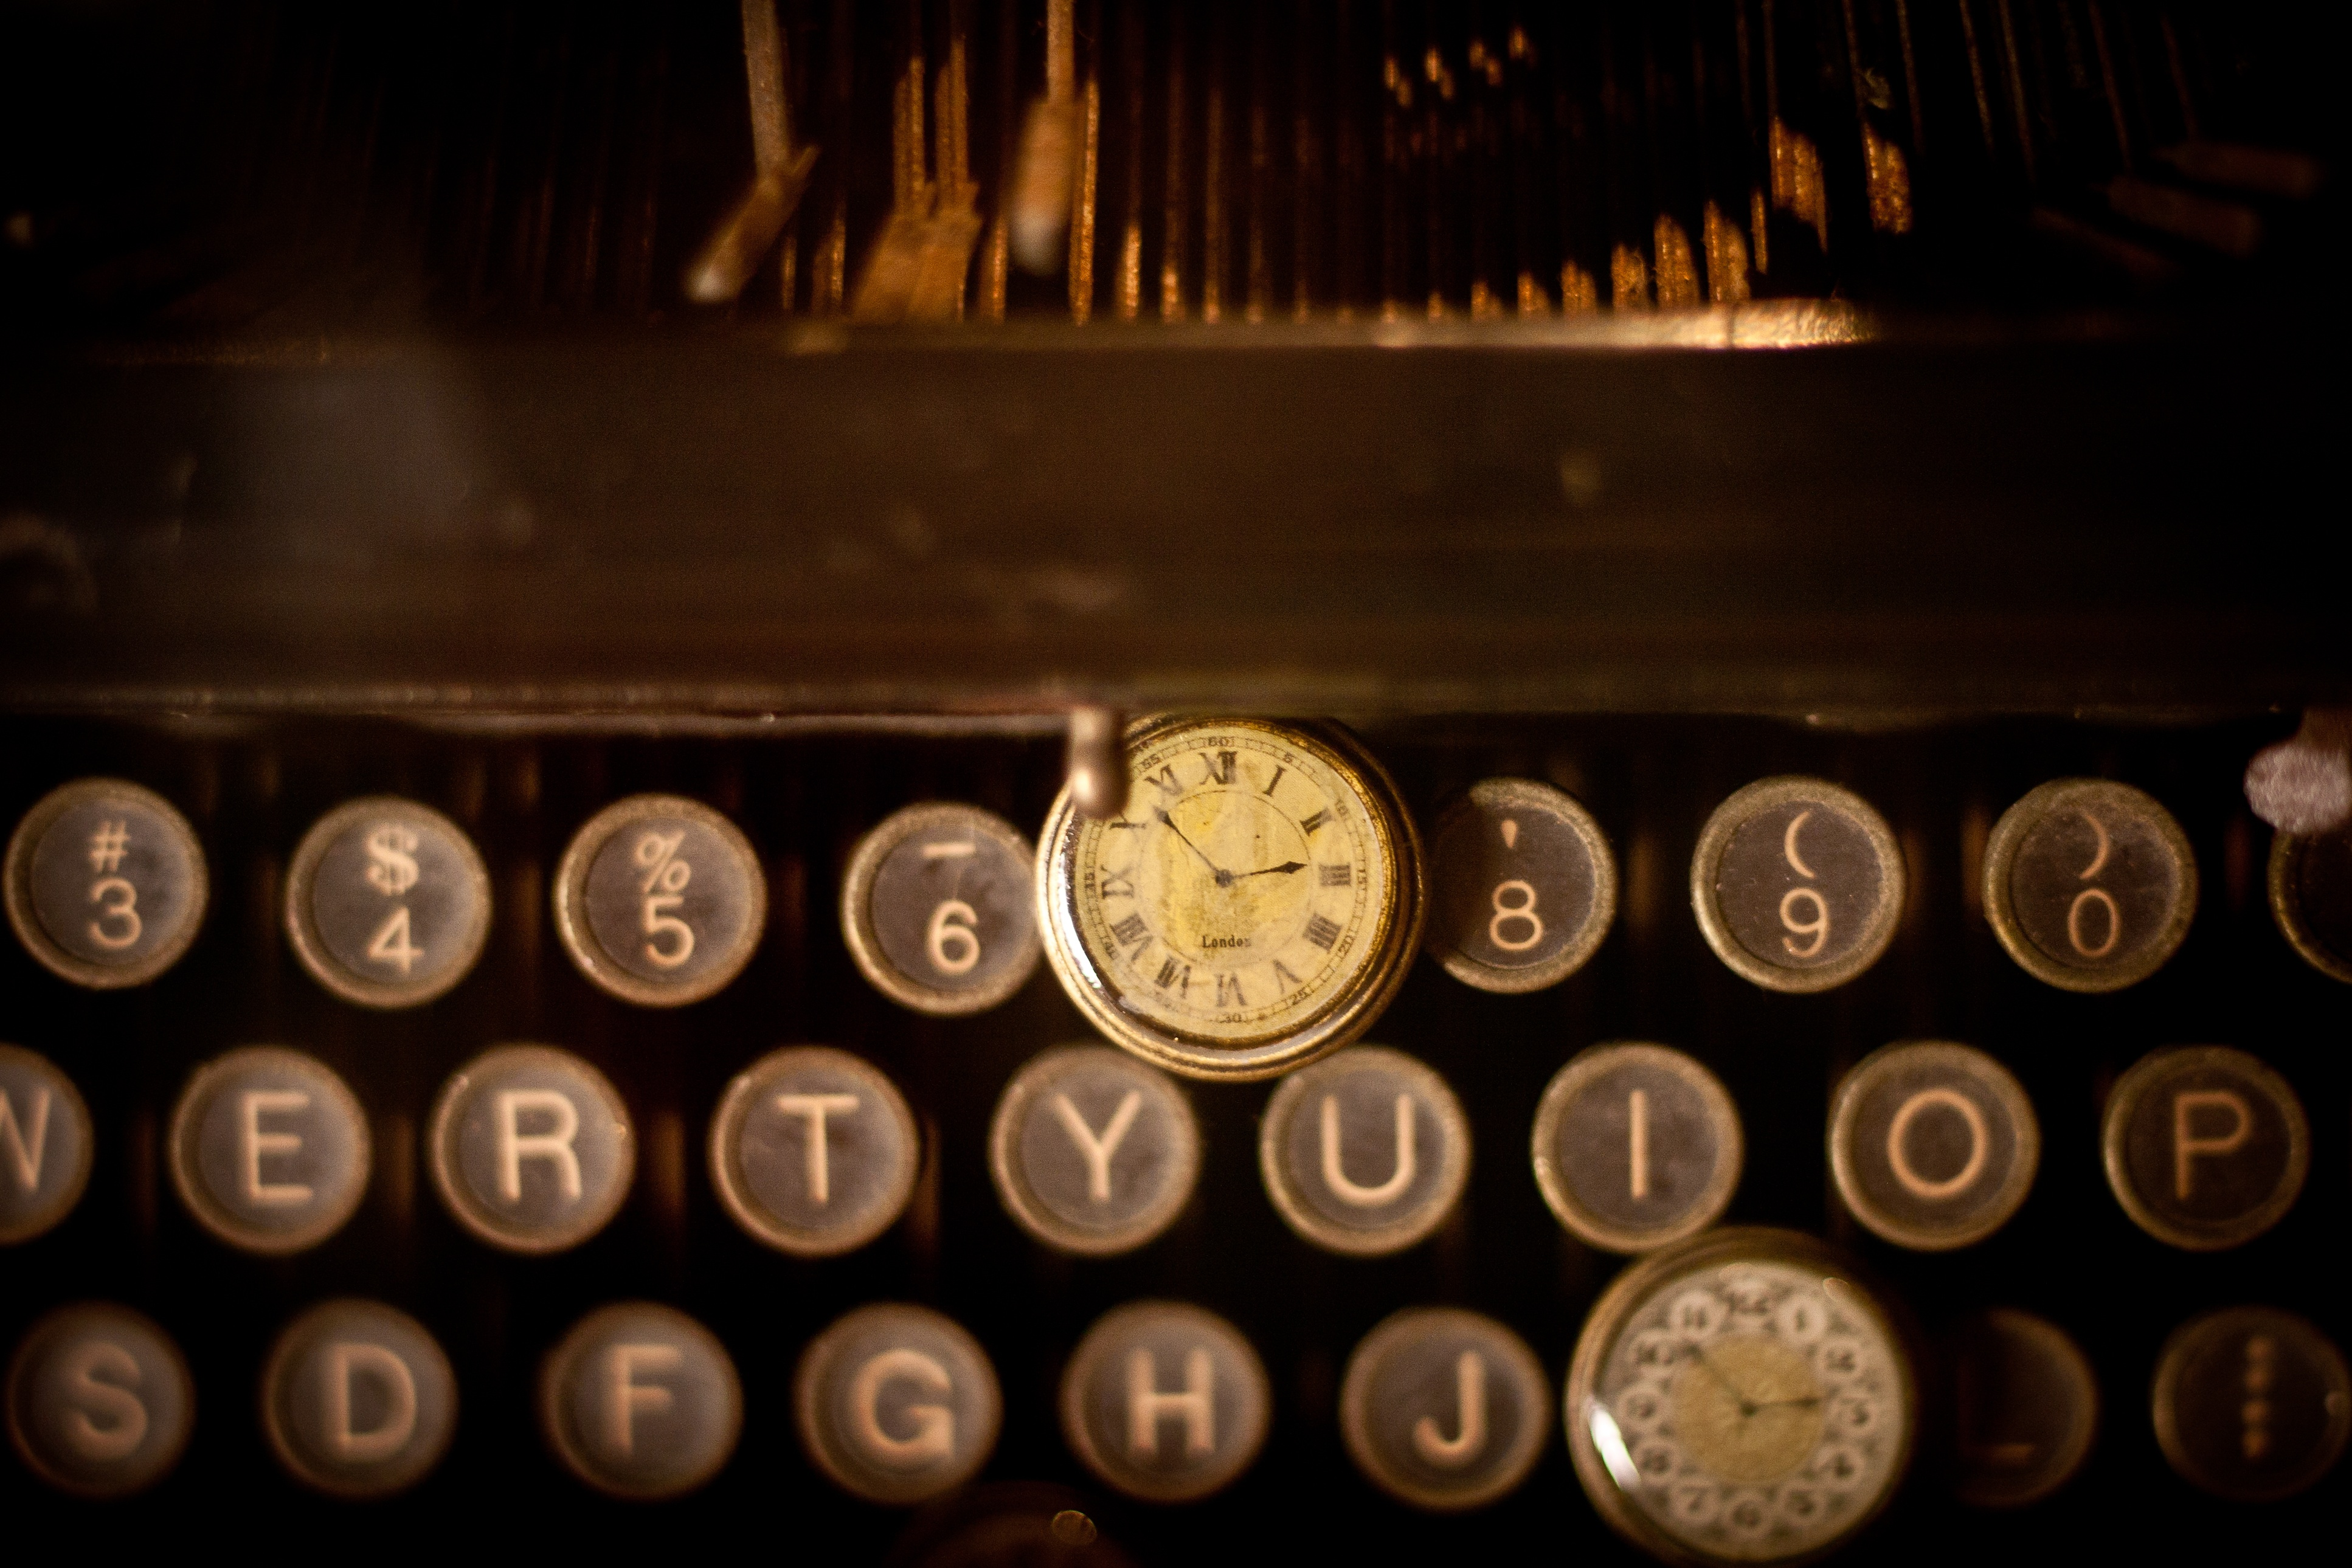 Typewriter, Writer, Type, Clock, Machine, HQ Photo